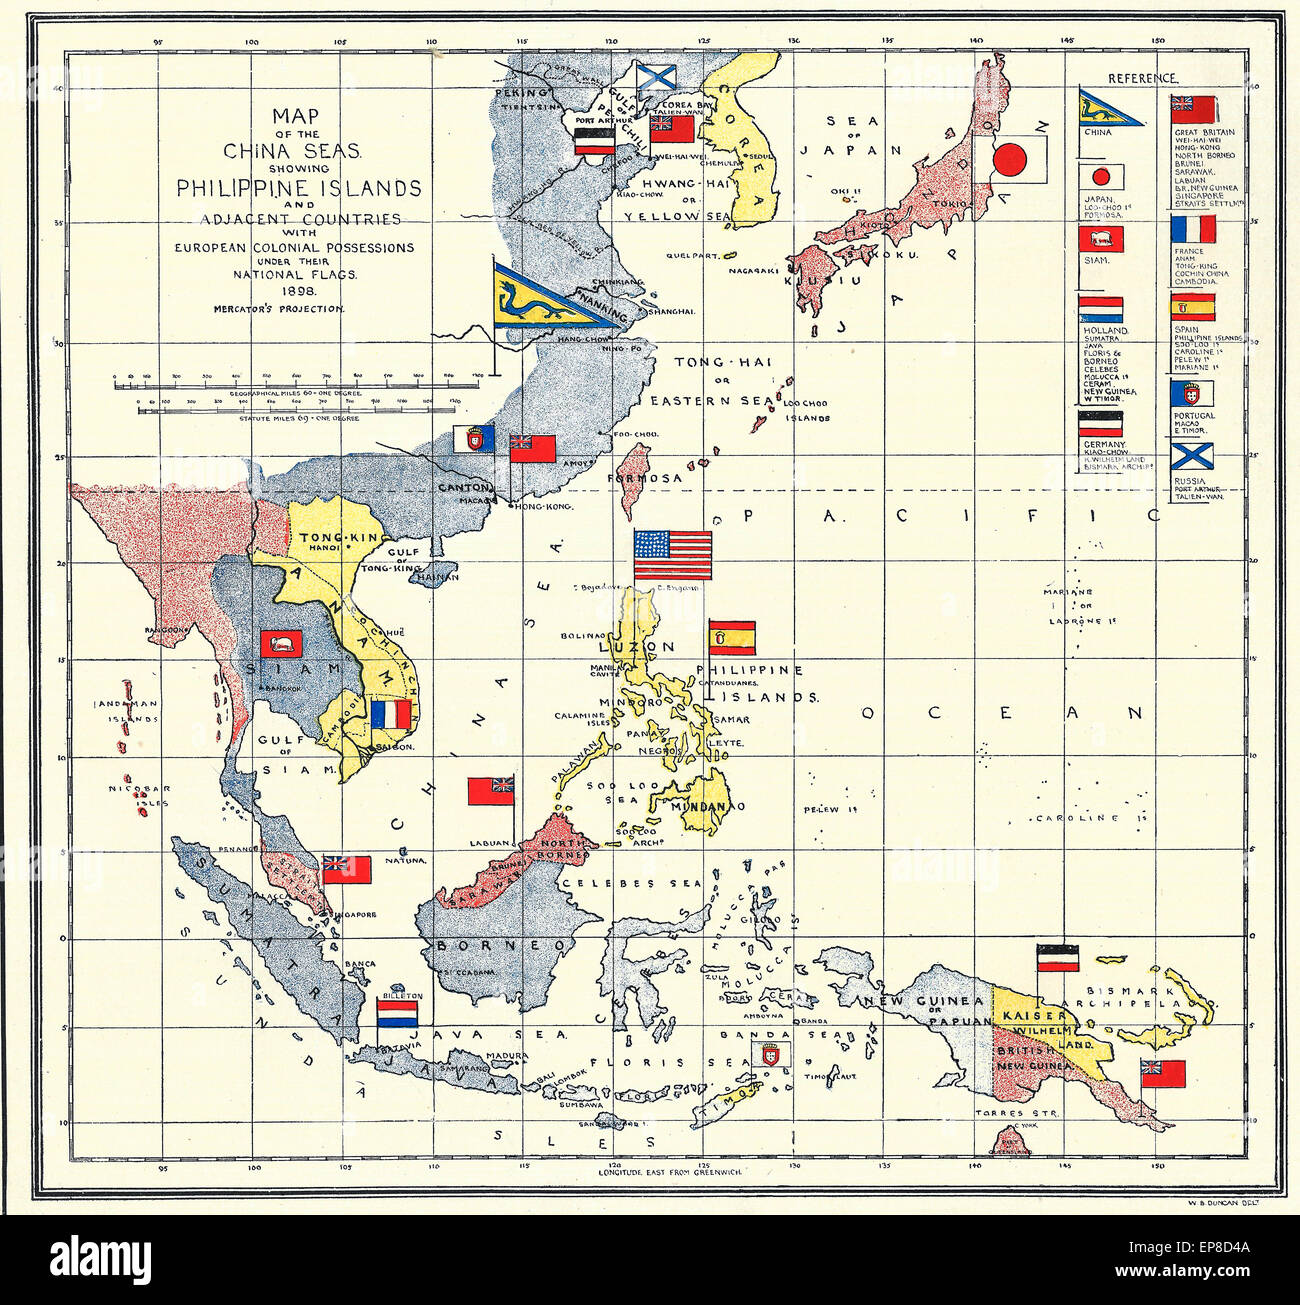 Spanish Philippines Map.Map Of The China Seas And Philippine Islands At The Time Of The